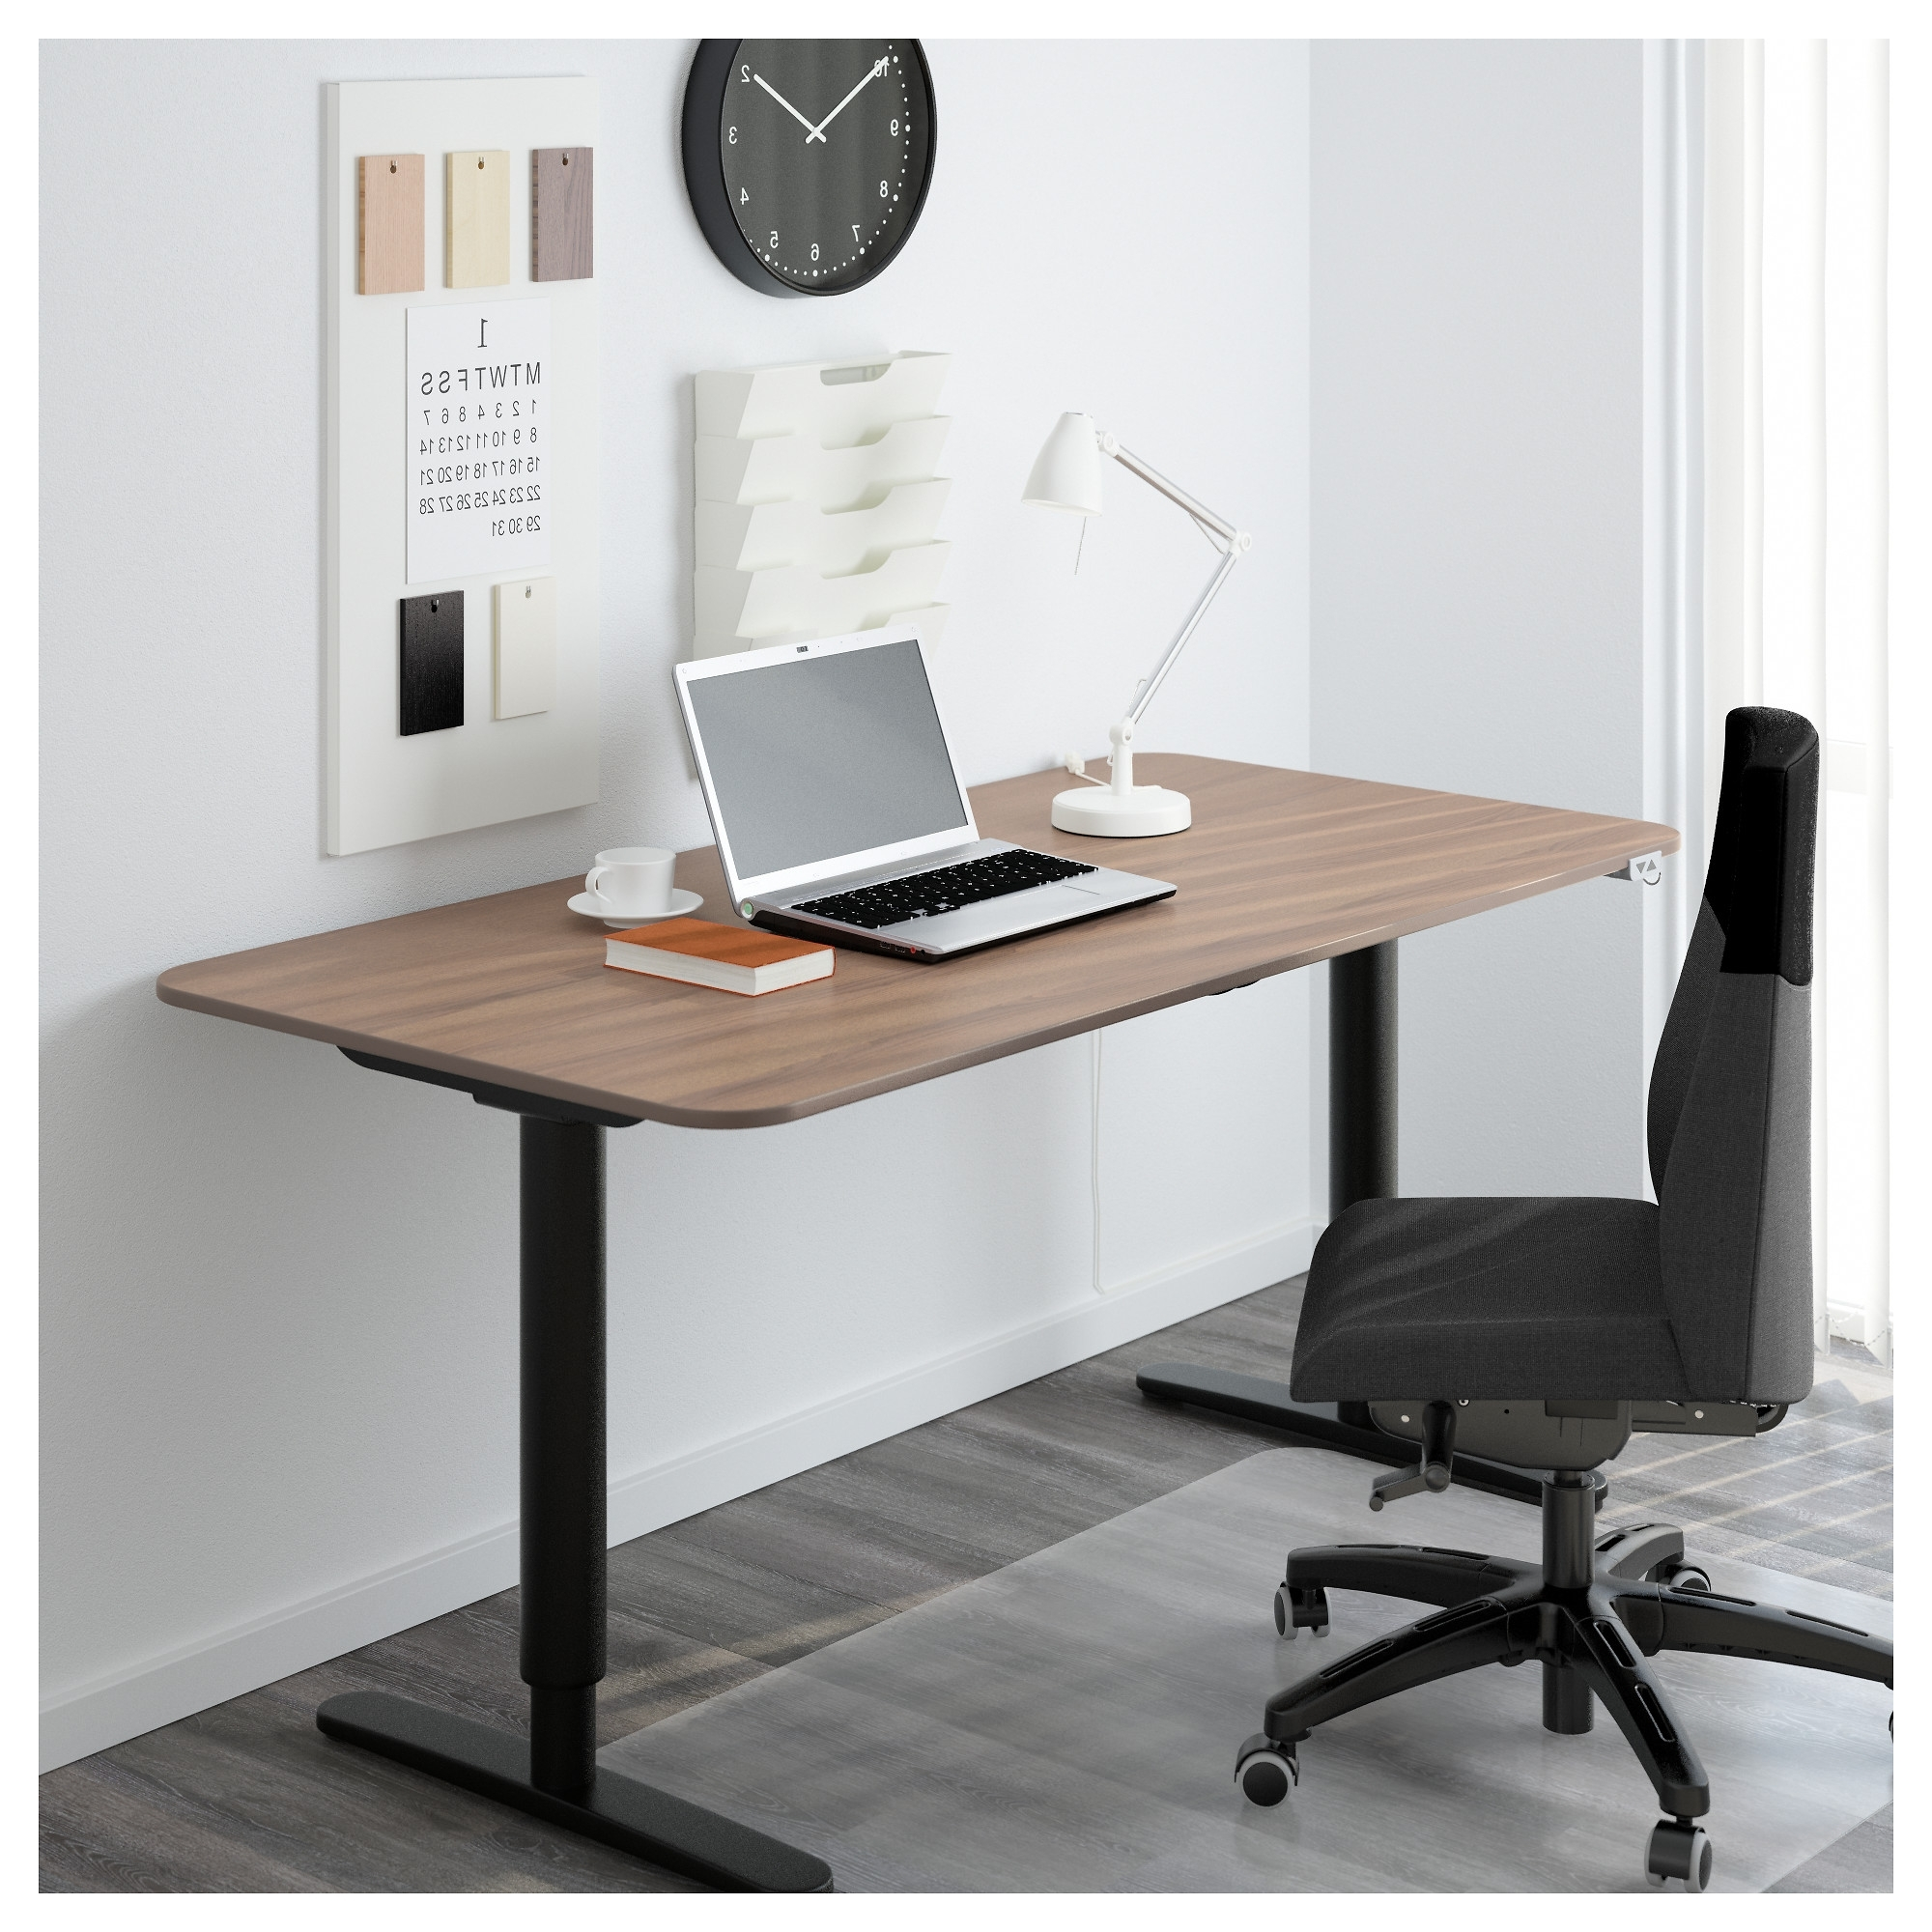 small desk home desks atlantic within computer summer ikea cape corner perfect decor design